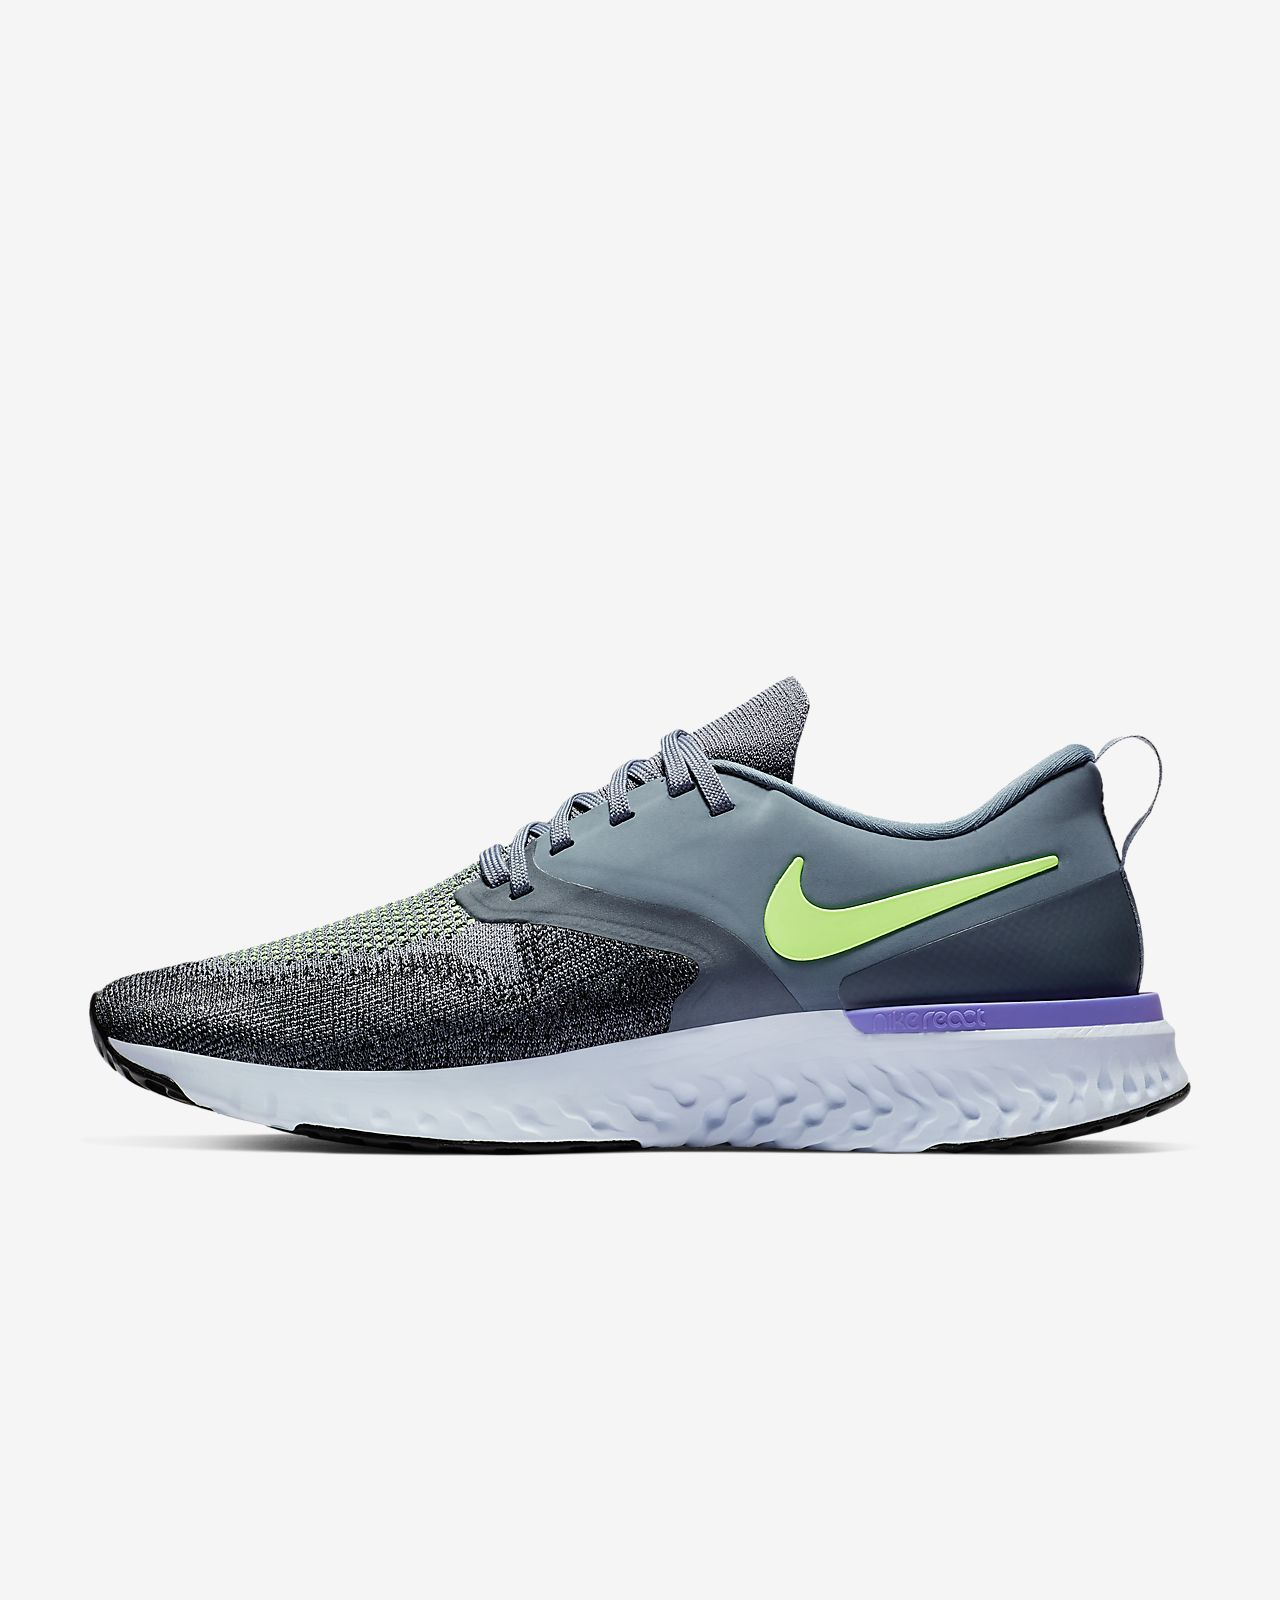 ef37e819b9050 Chaussure de running Nike Odyssey React Flyknit 2 pour Homme. Nike ...